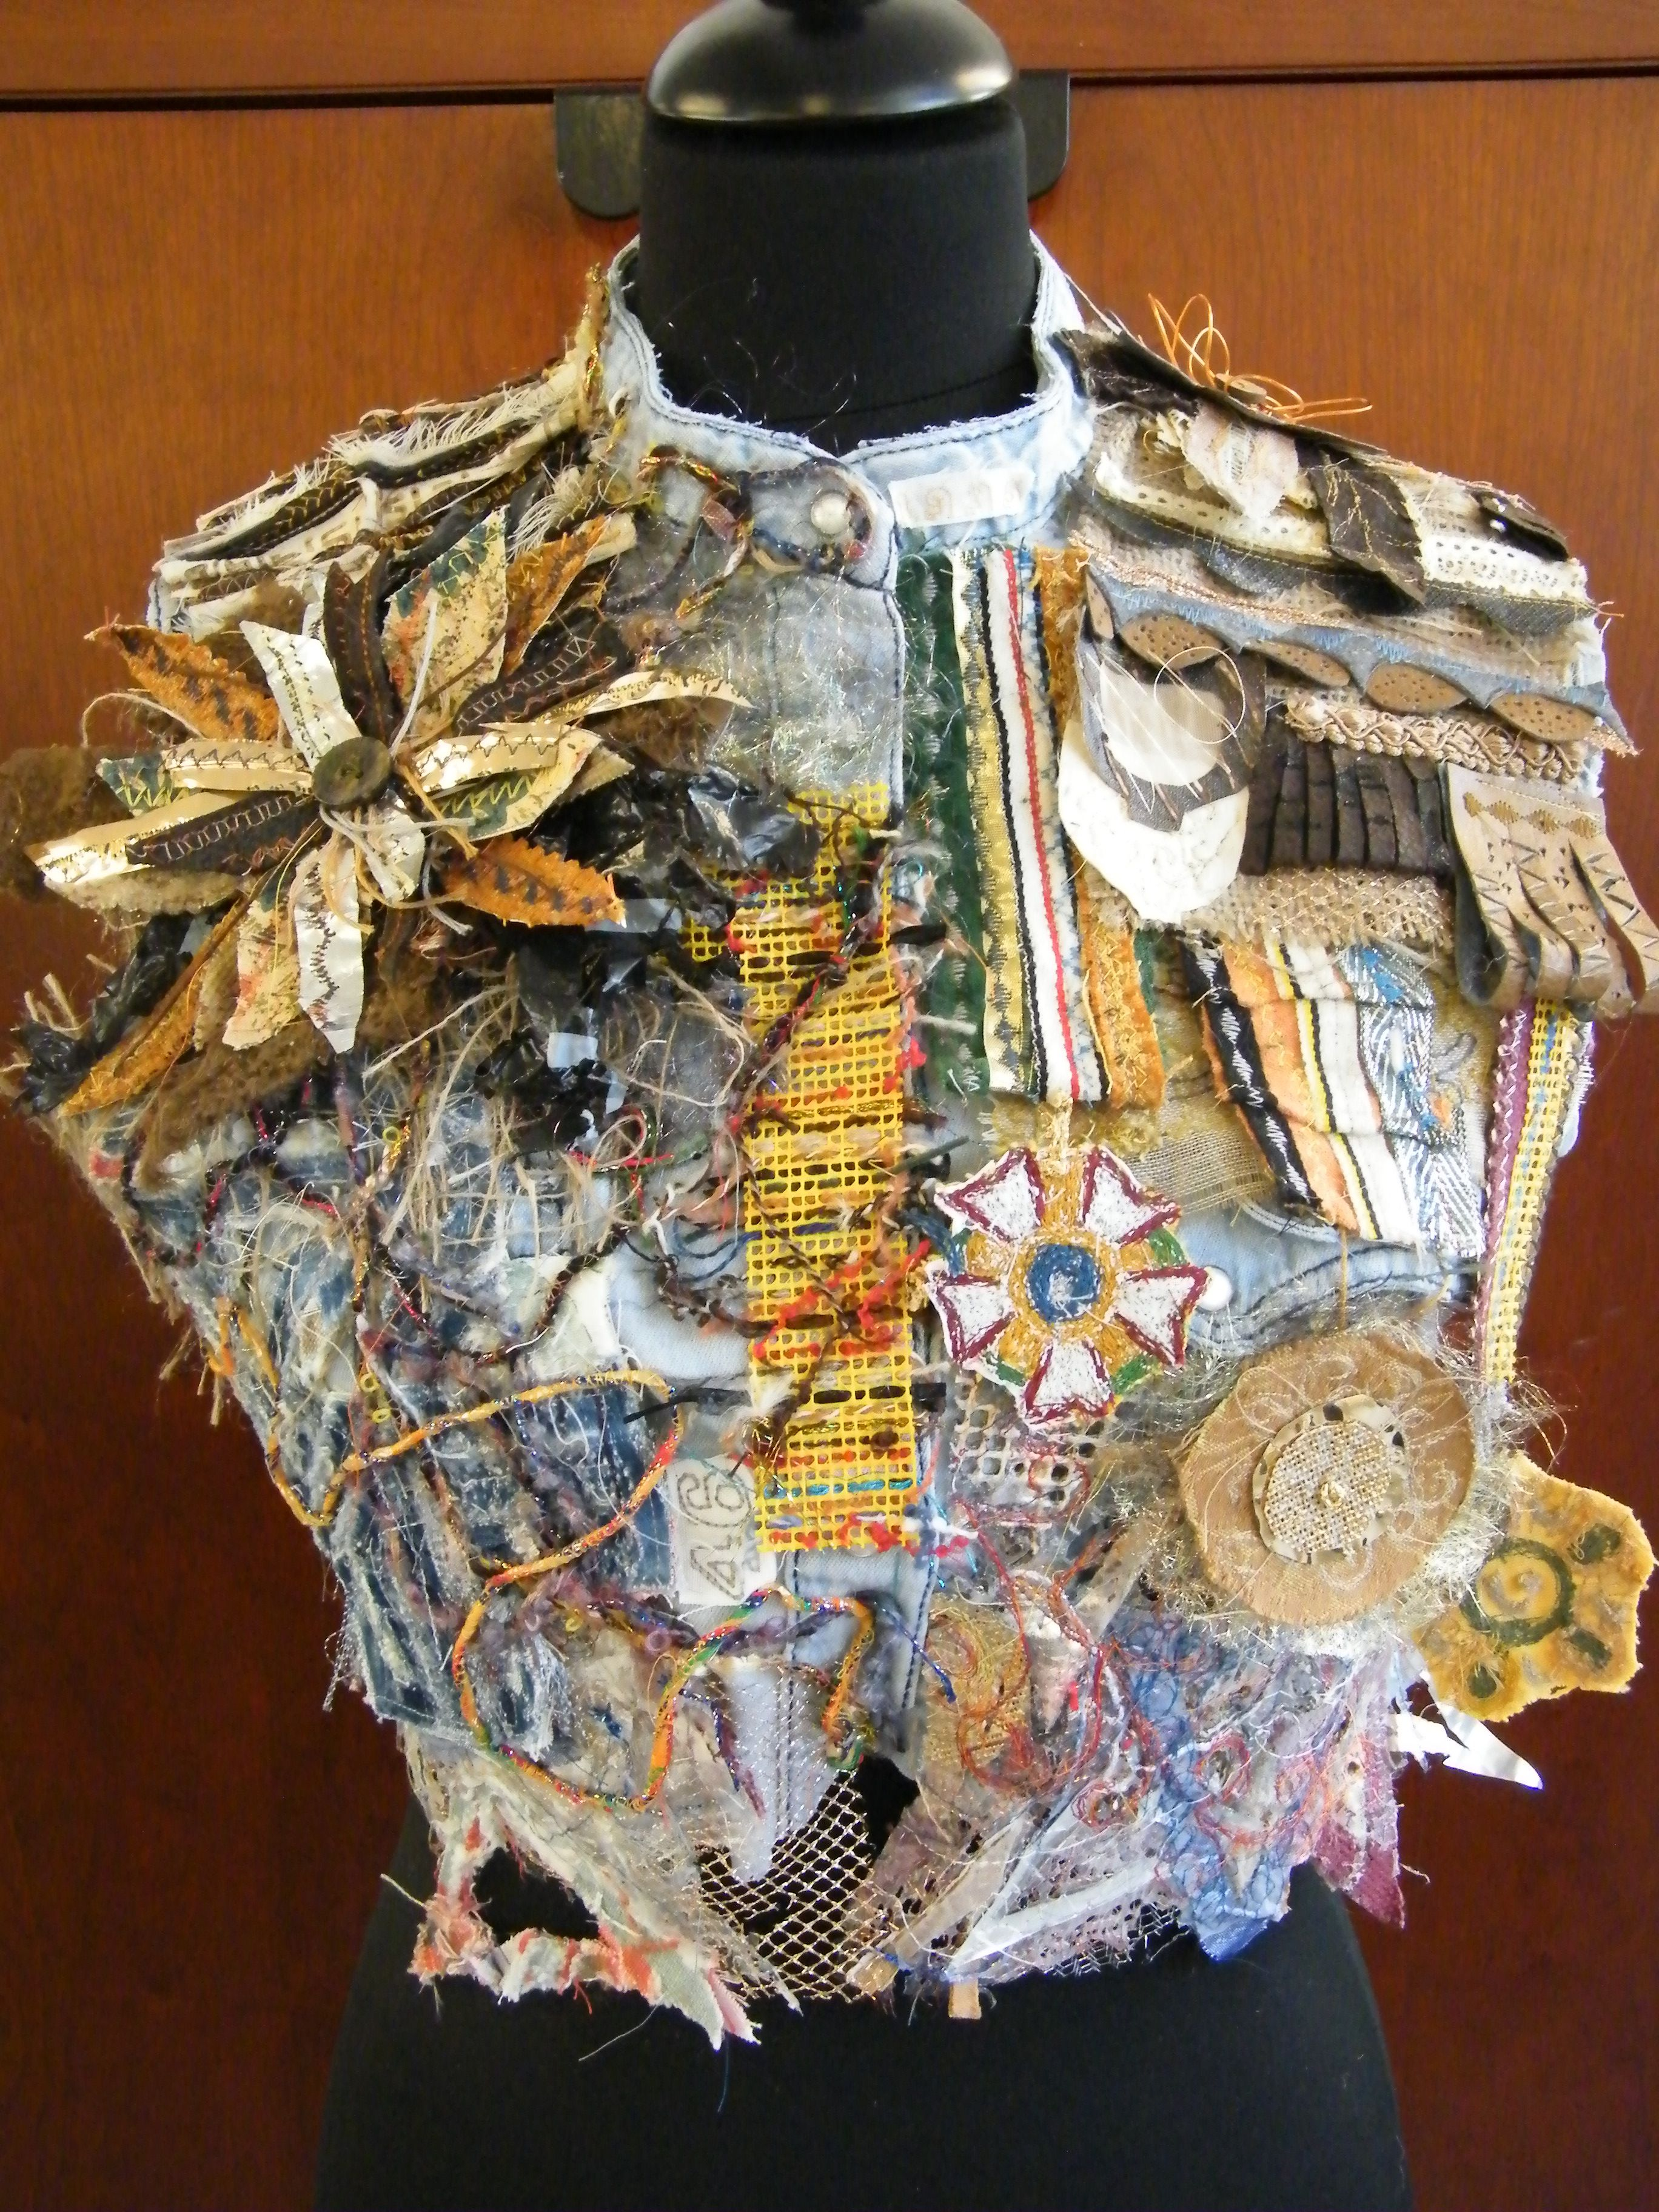 Pin By Joann Nehme On South Craven School Students Work Textiles Projects Textiles Fashion Textile Design